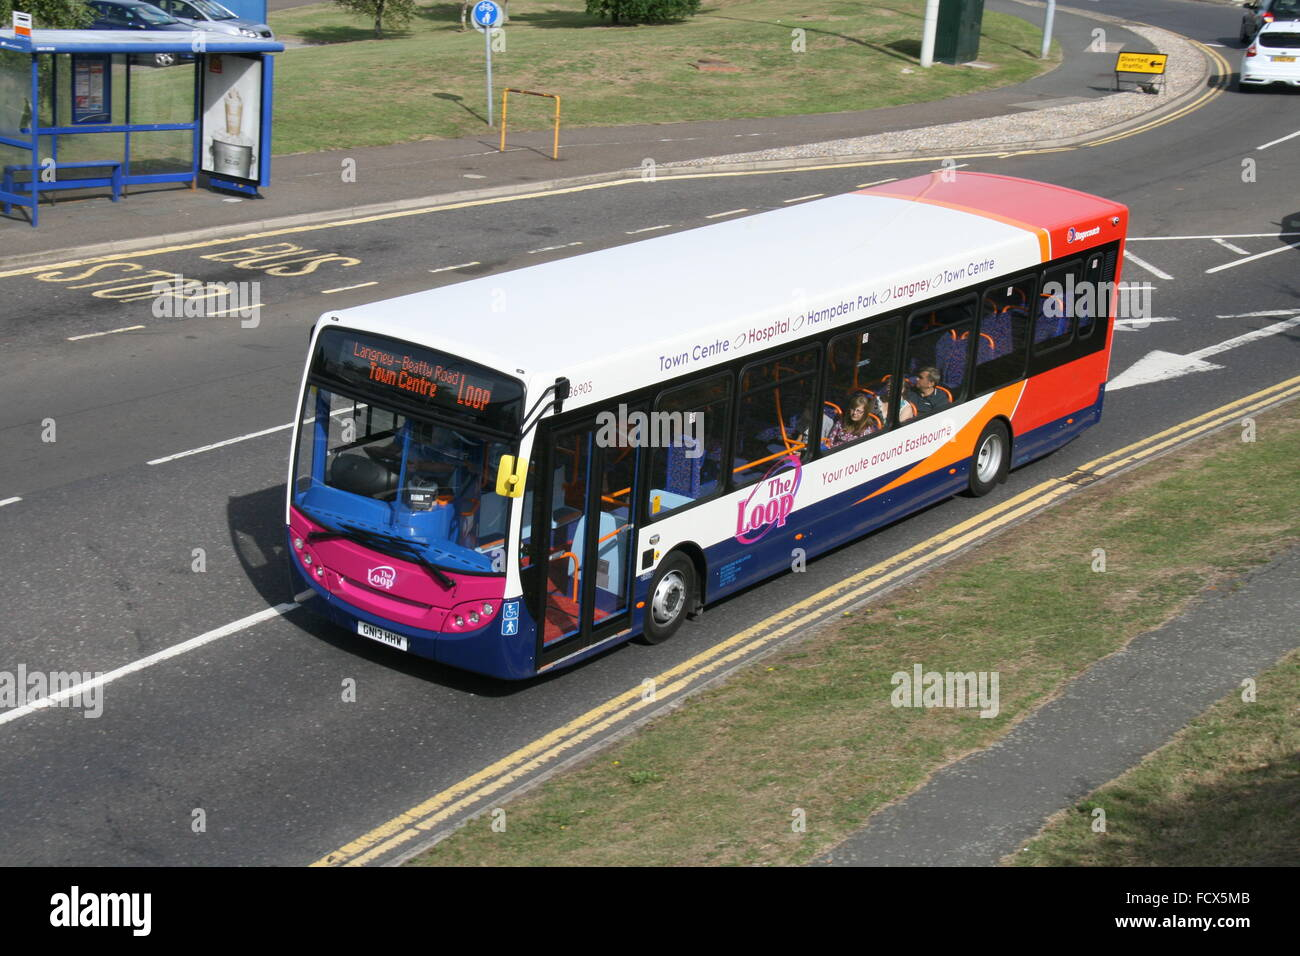 A FRONT NEARSIDE VIEW FROM ABOVE ON A BRIDGE OF ADL ALEXANDER DENNIS ENVIRO BUS OF STAGECOACH - Stock Image